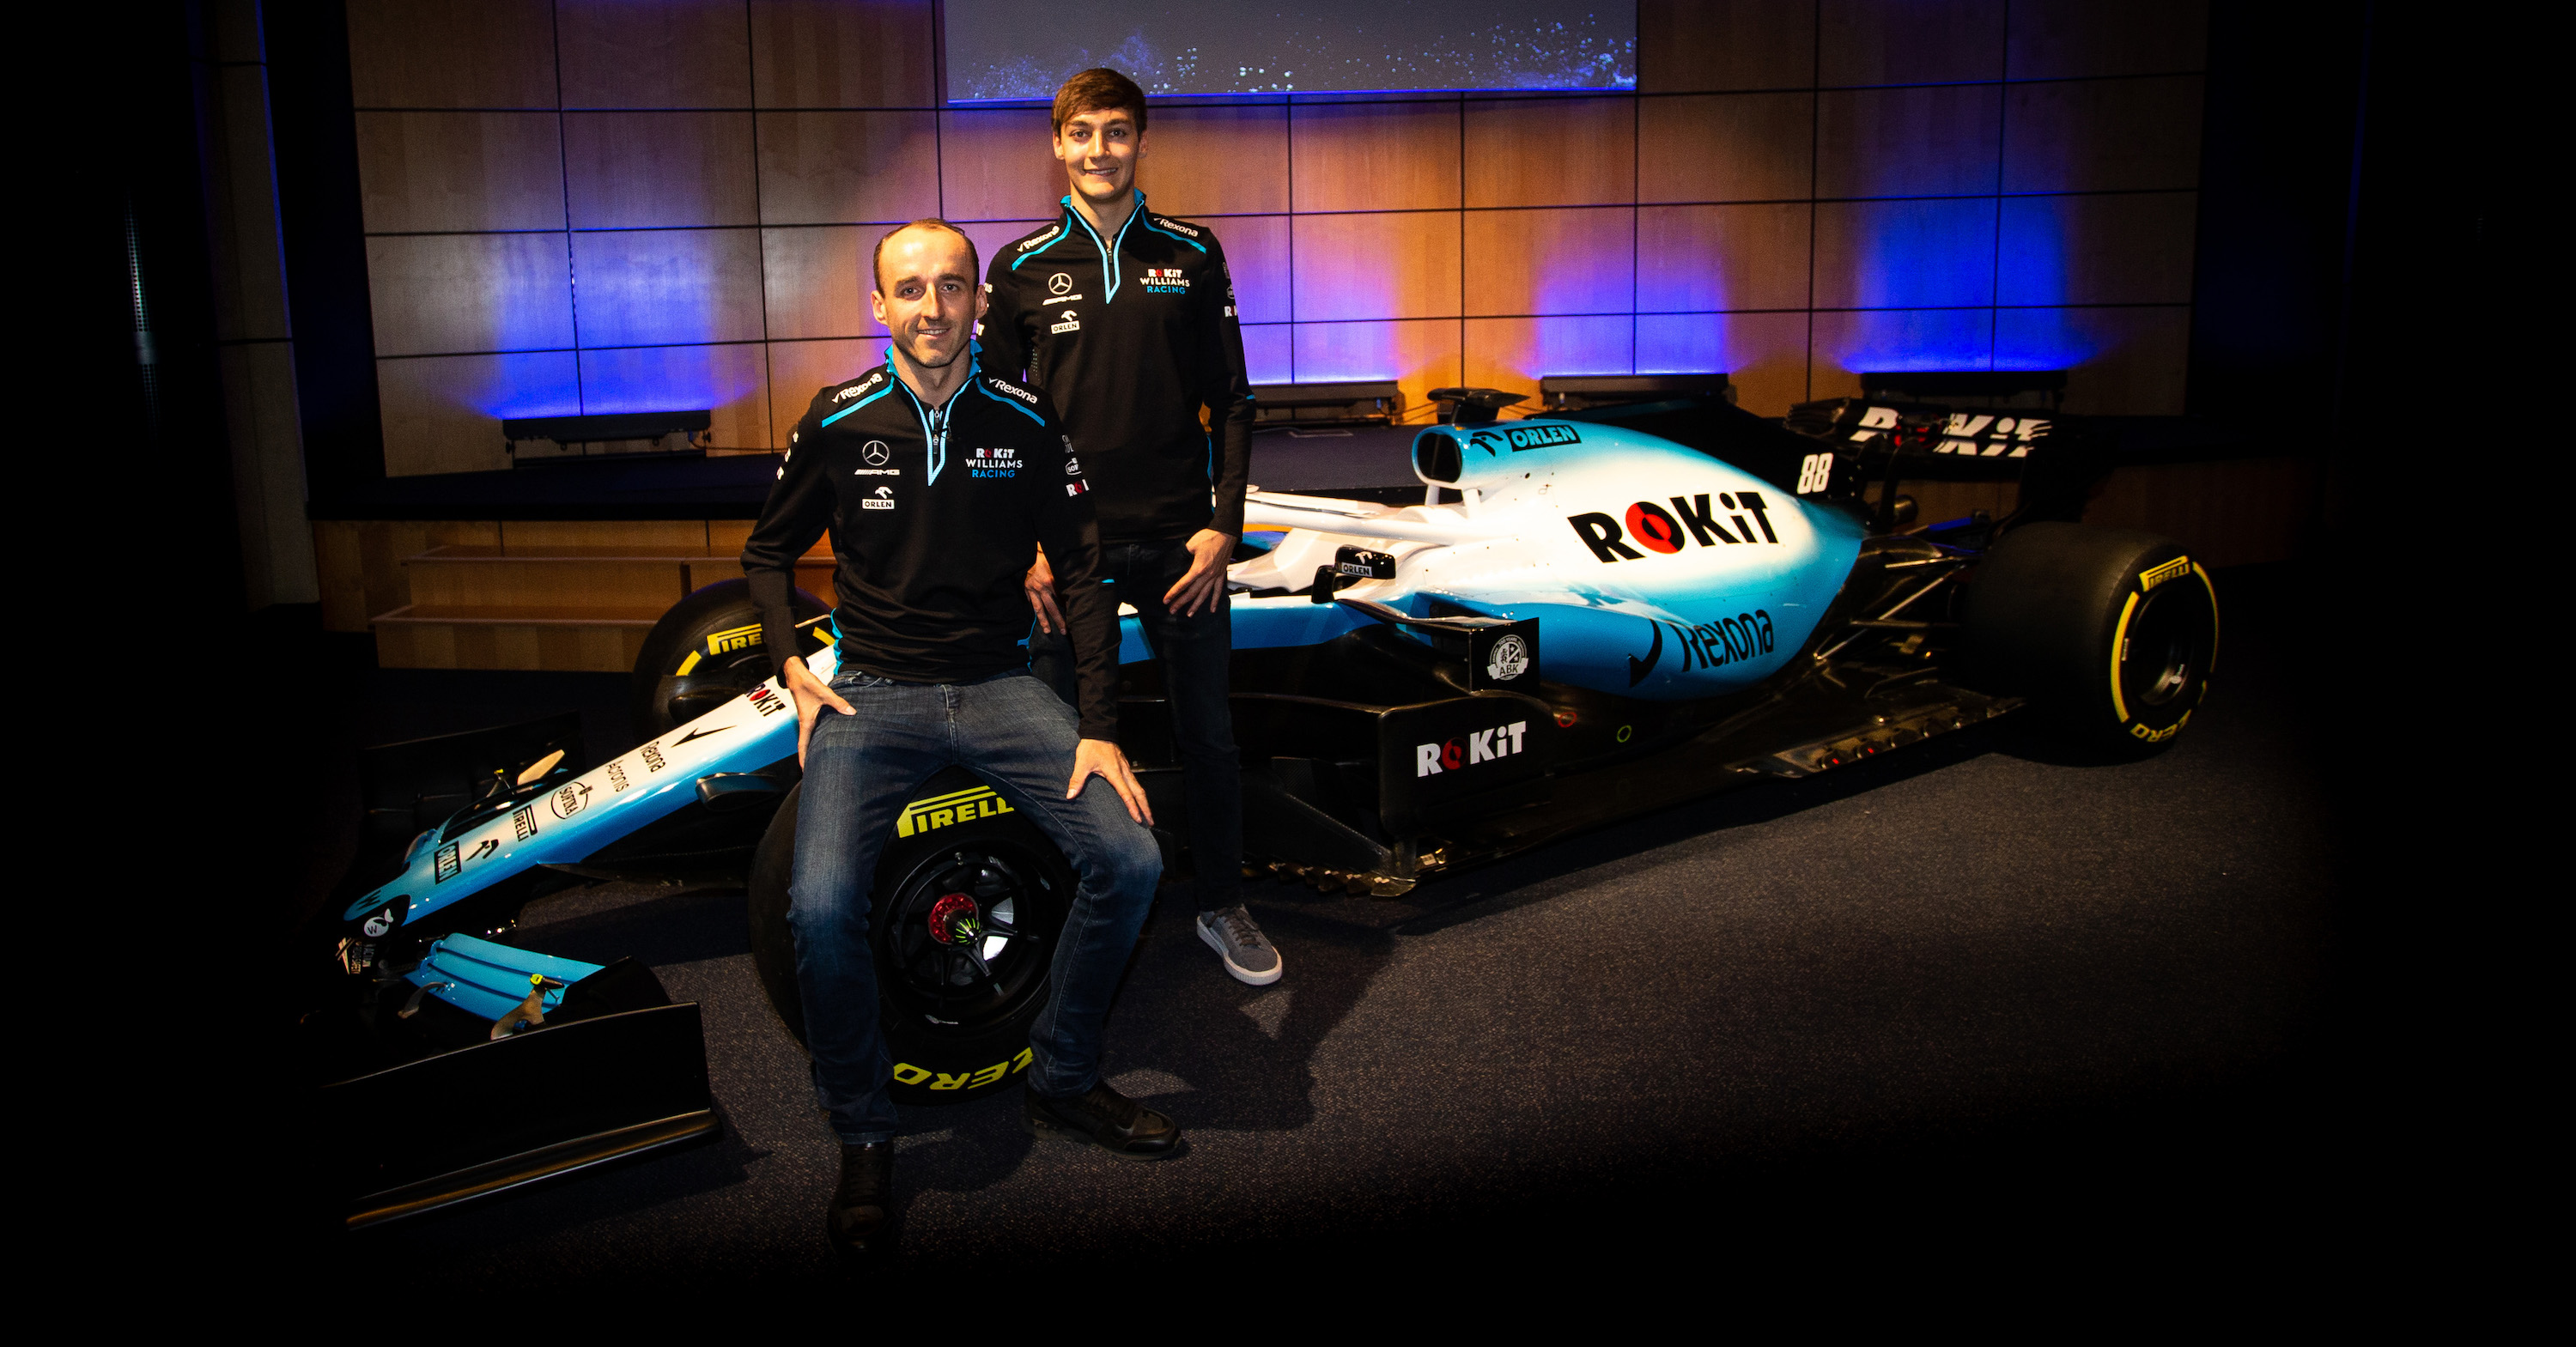 Motor Racing - Williams Racing Livery Unveil - Grove, England